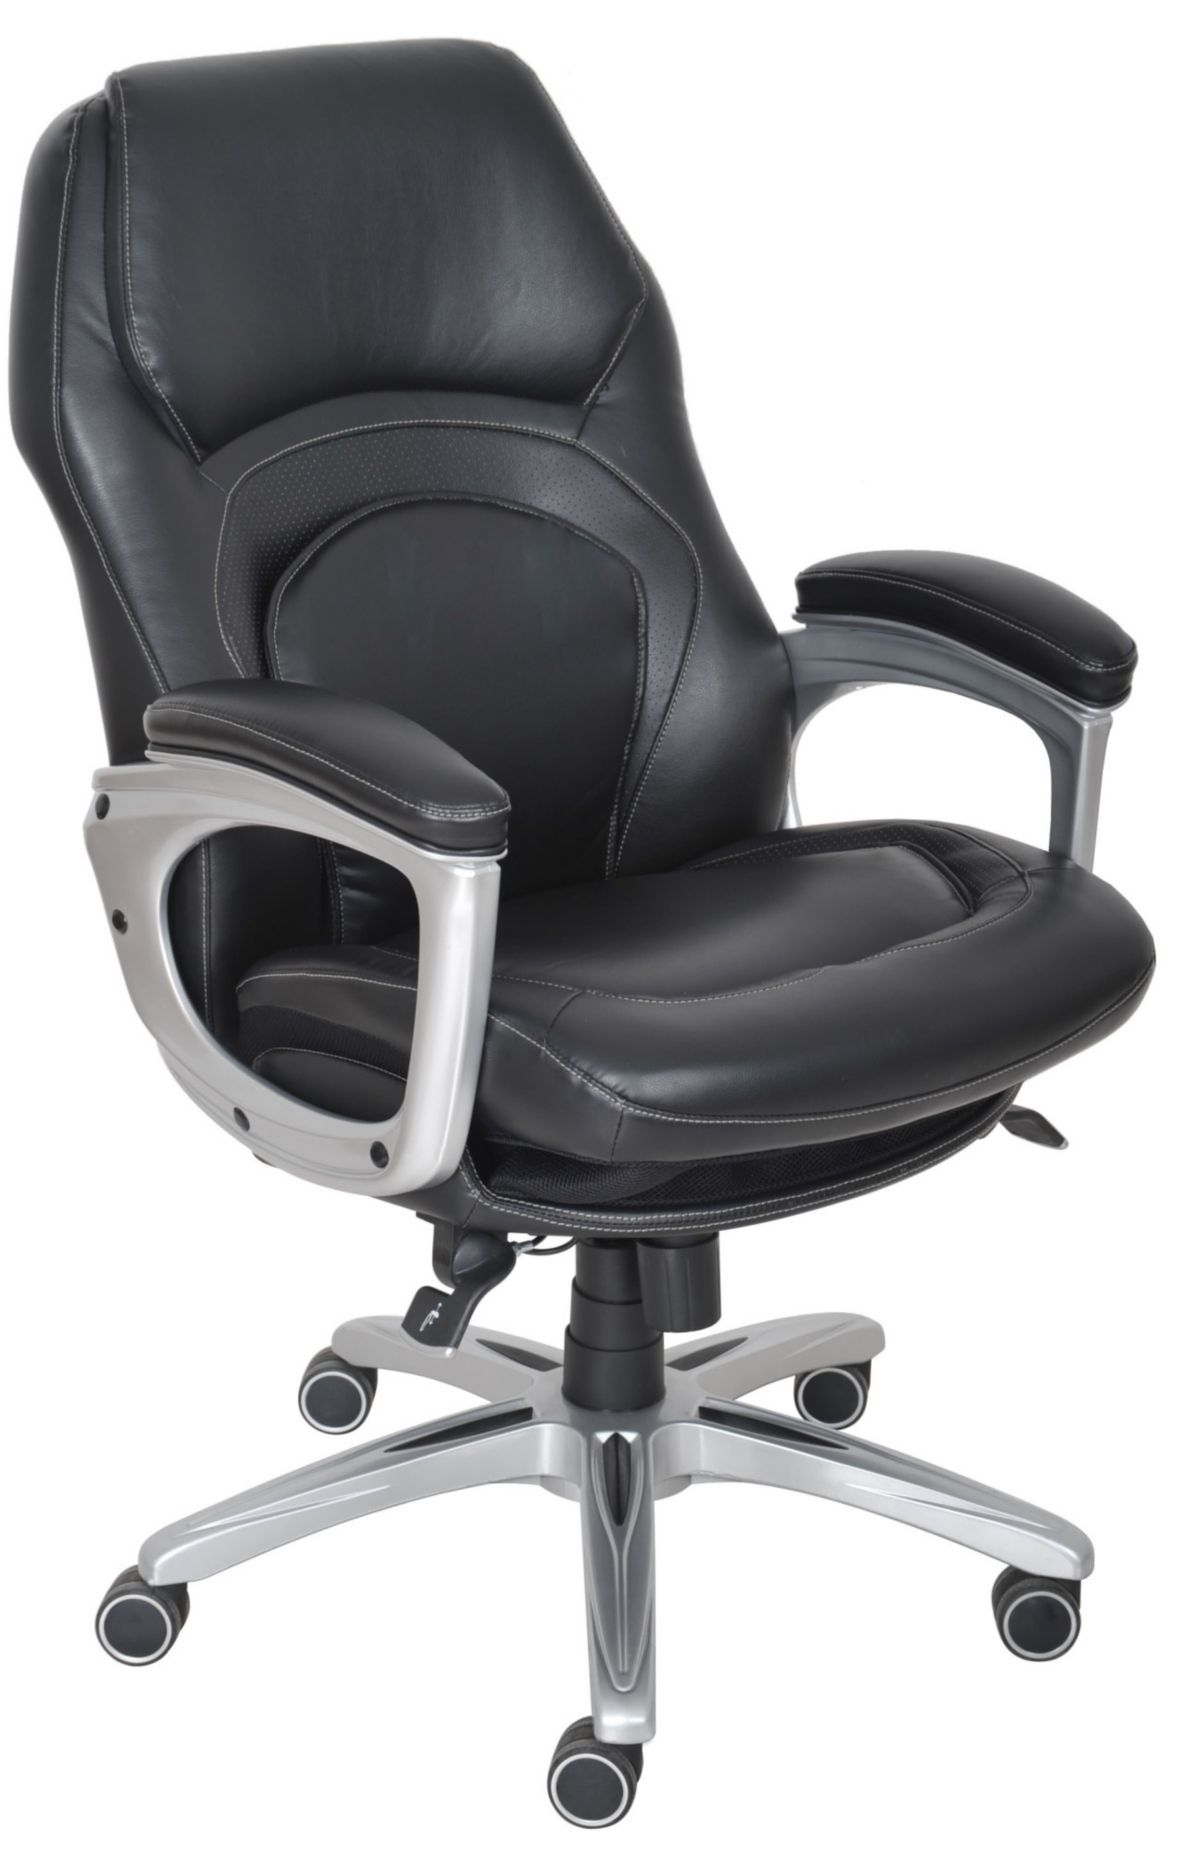 Serta Wellness Executive Leather Office Chair & Reviews